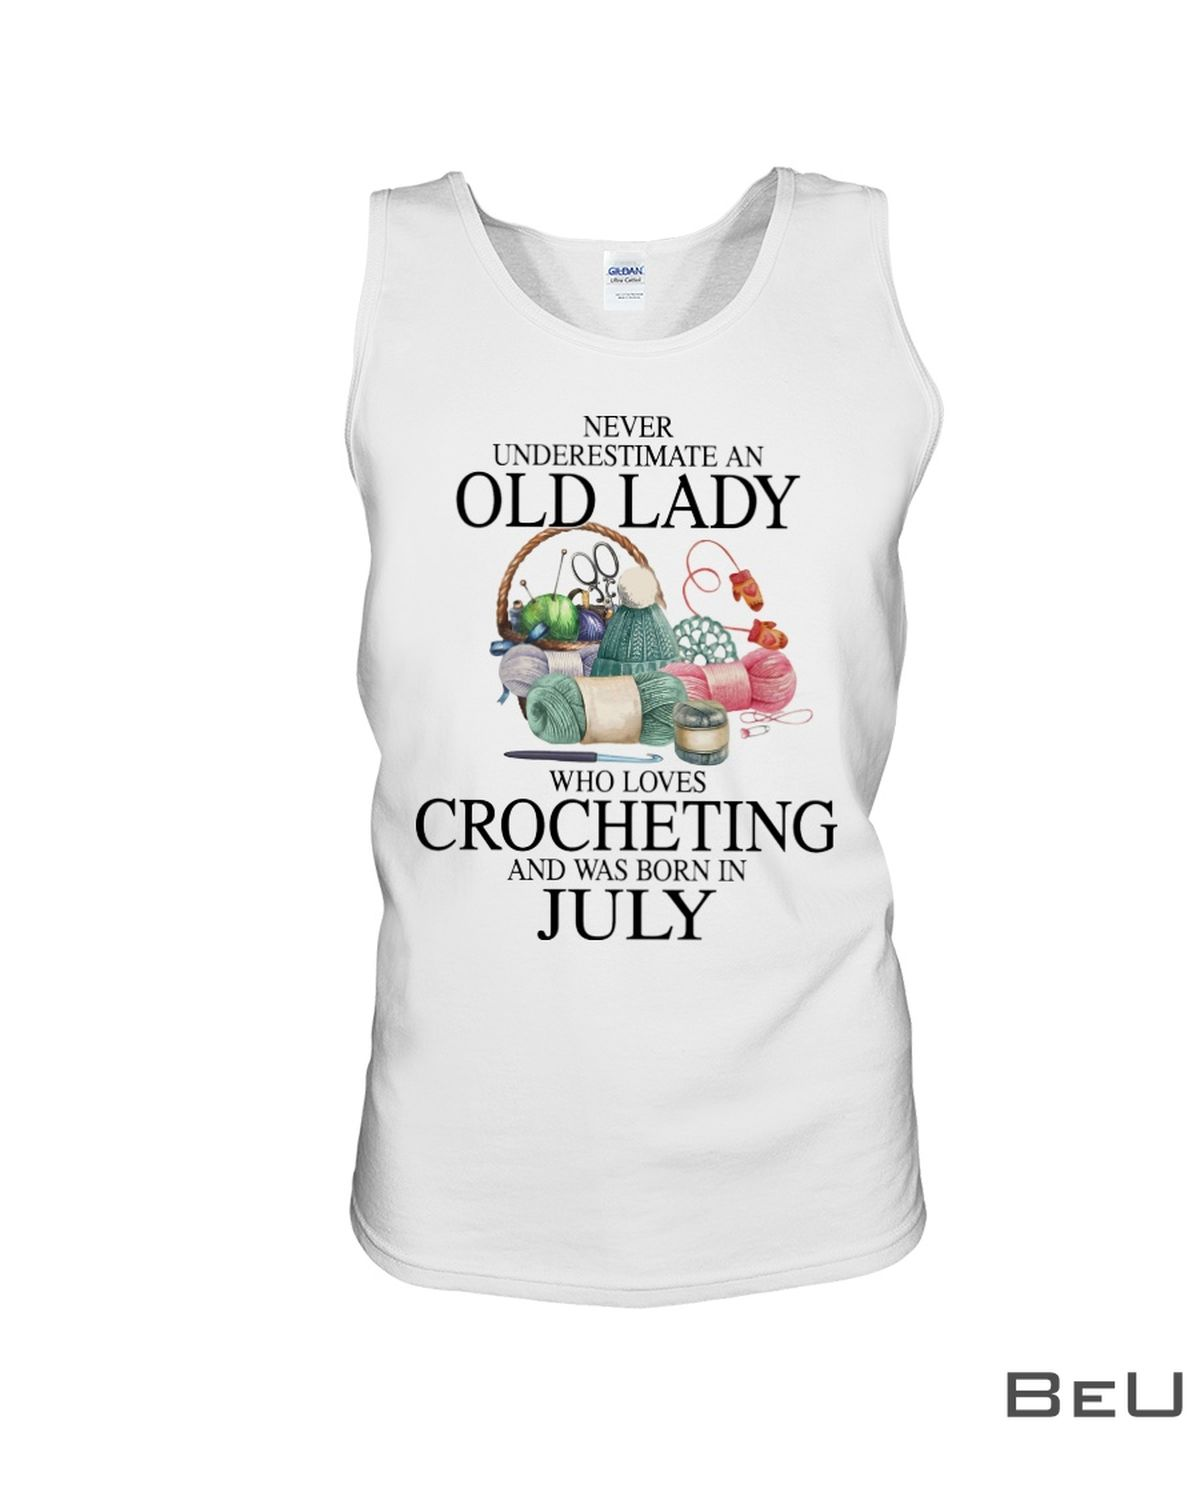 Never underestimate an old lady who loves Crocheting and was born in July shirtc